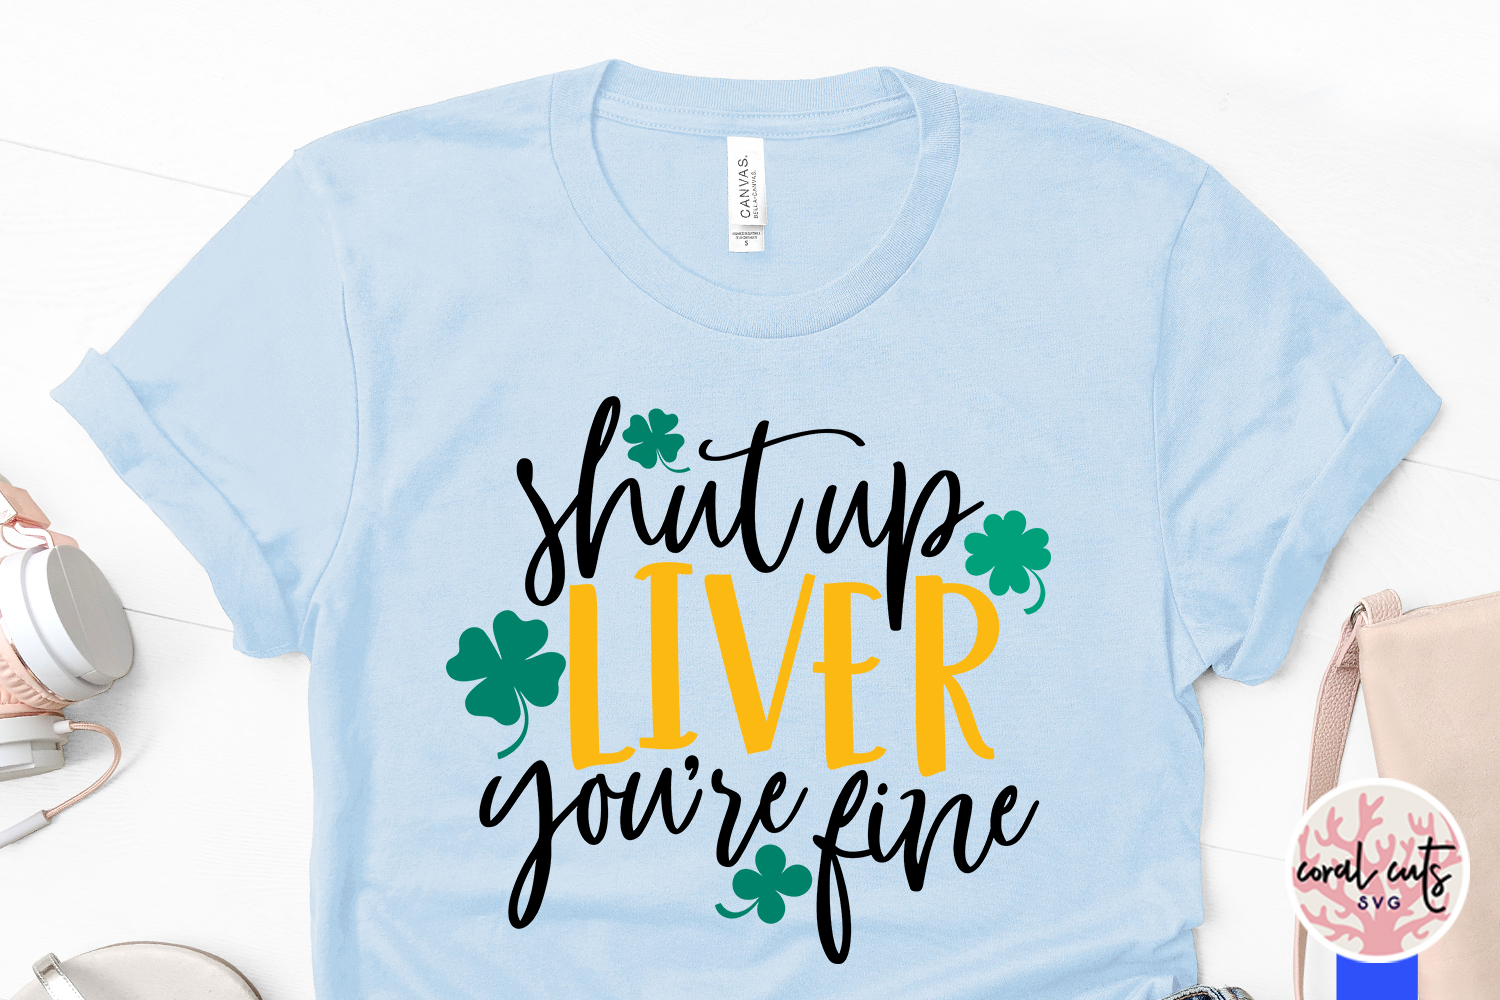 Shut up liver you're fine - St. Patrick's Day SVG EPS DXF example image 3